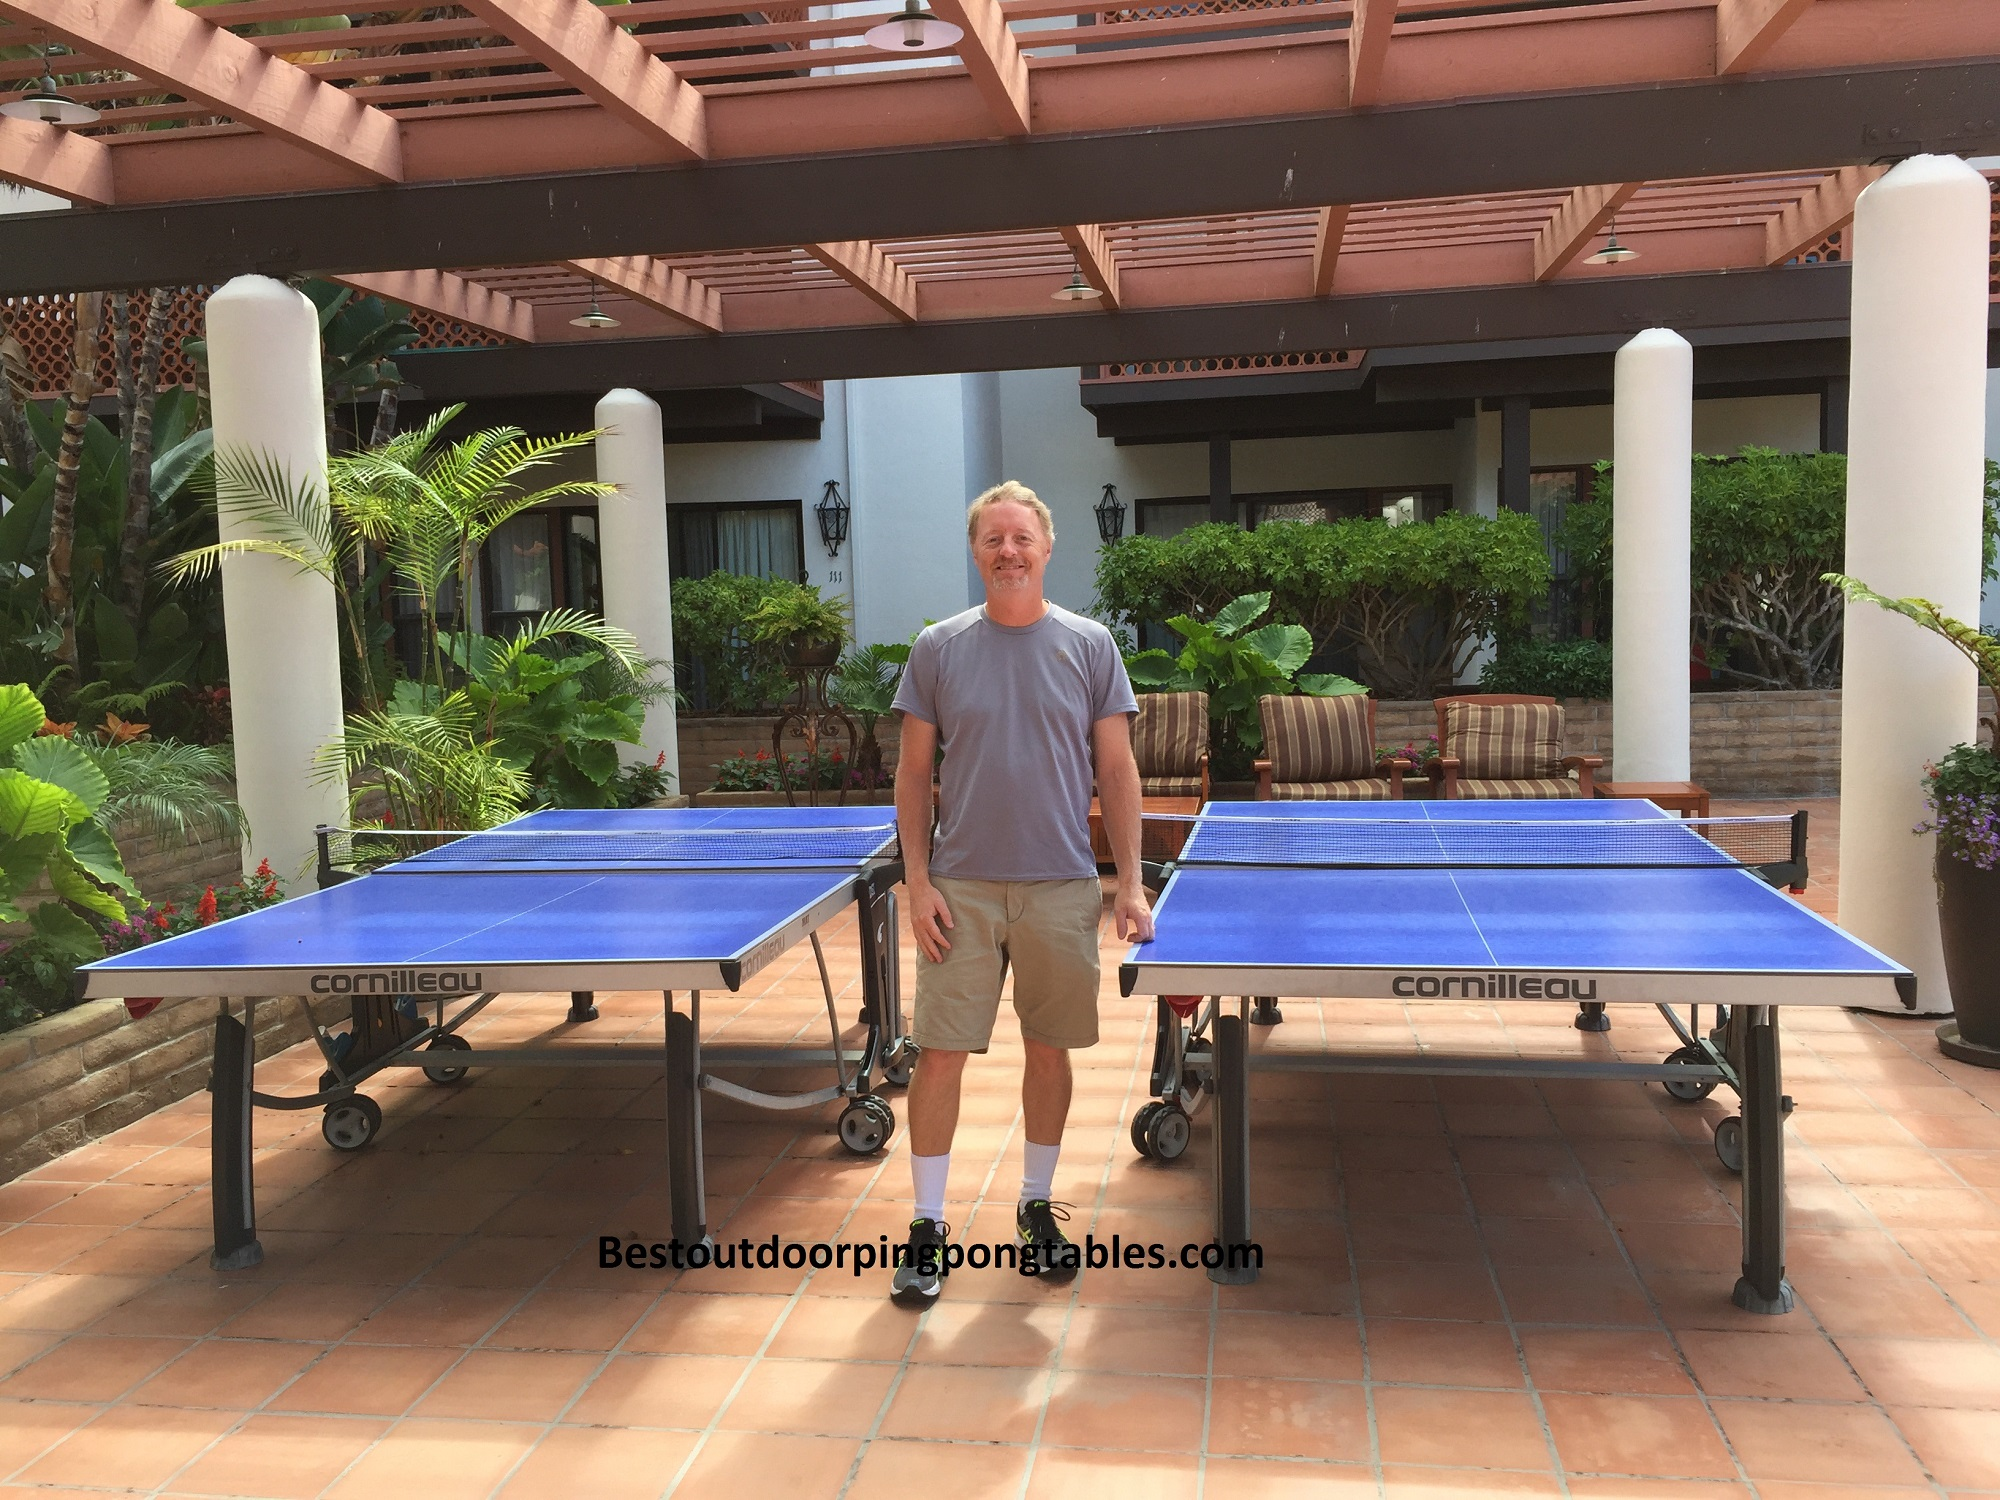 Cornilleau 500m crossover outdoor ping pong table - Table cornilleau 500m outdoor ...